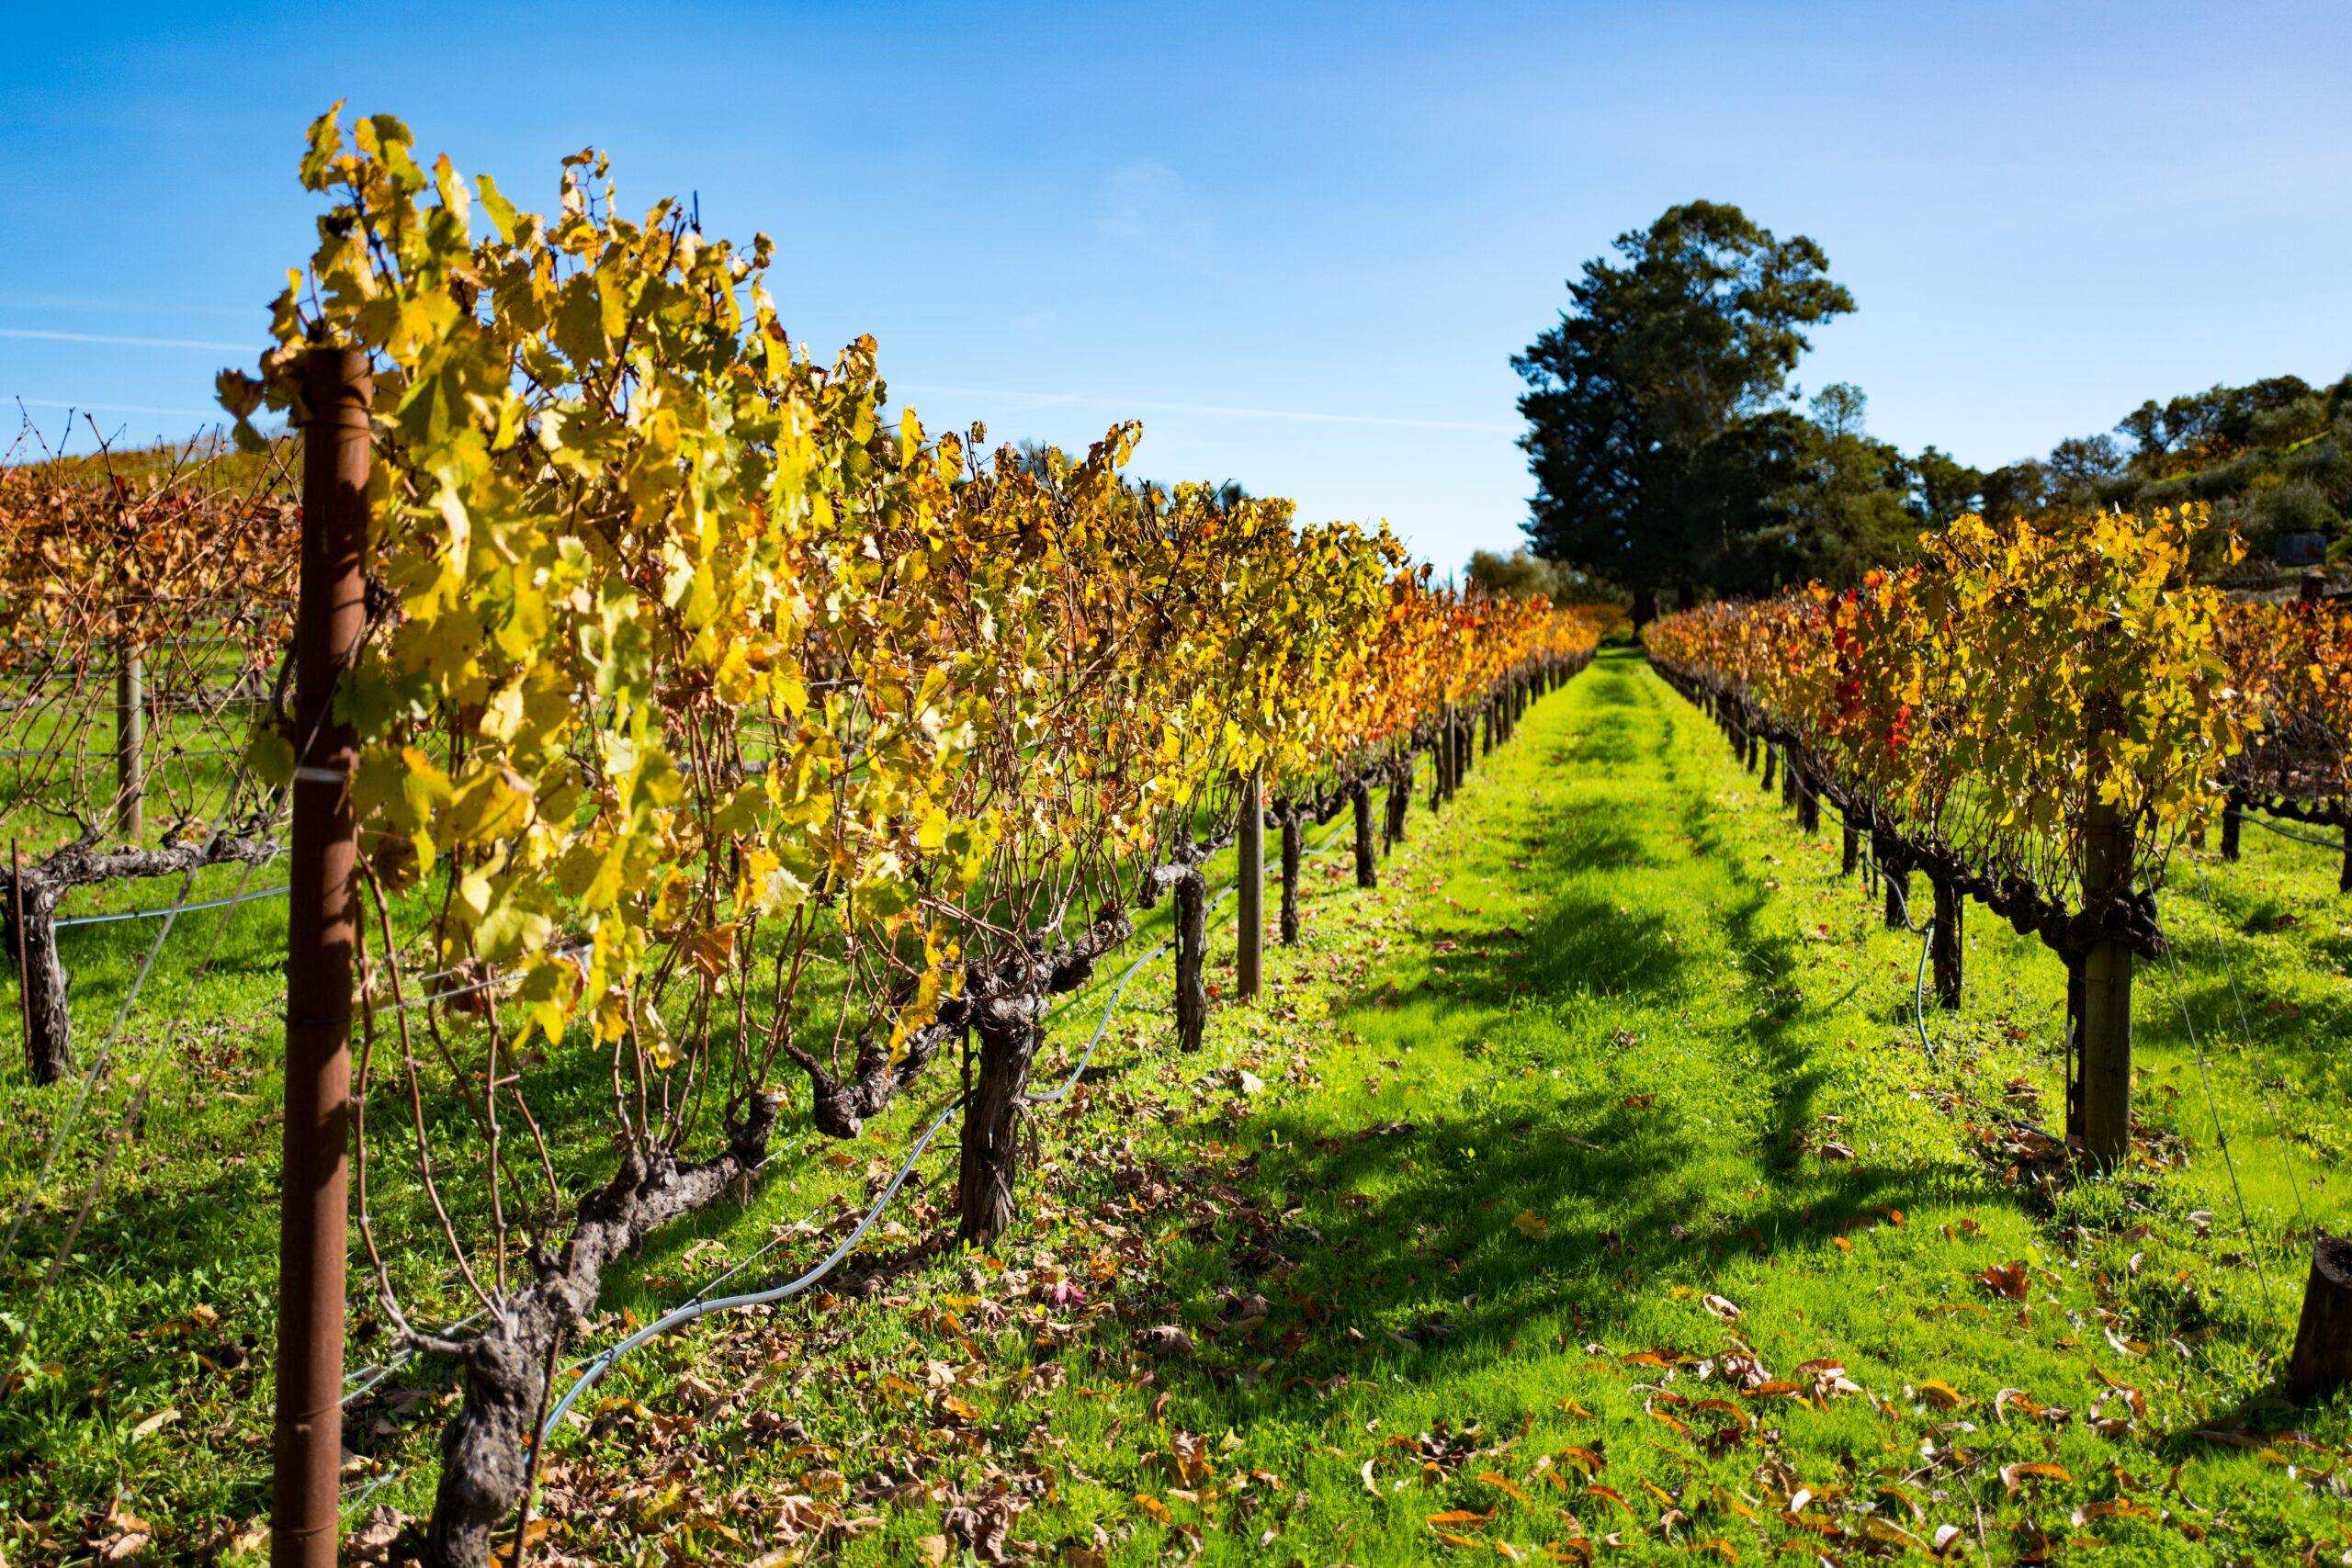 Grapevines at a vineyard in Sonoma County, California, November 27, 2016. Sonoma County experienced an outbreak of Pierce's disease in 2014. Credit: Smith Collection/Gado/Getty Images